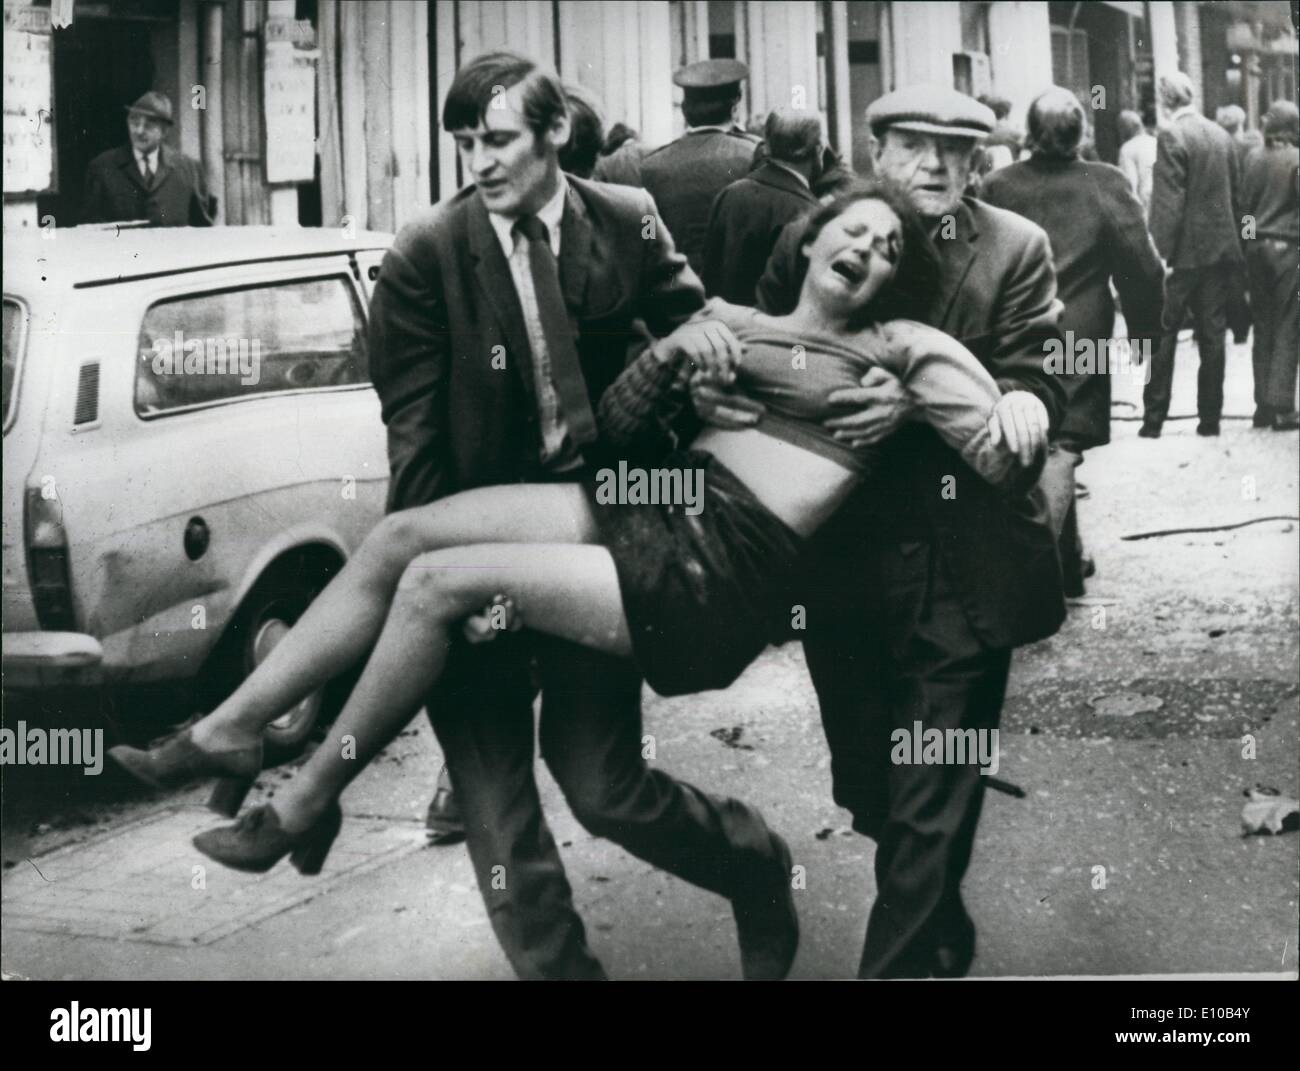 Mar. 03, 1972 - 6 Killed And 146 Injured In Bomb Explosion In Belfast: Six people were killed and 146 injured by - Stock Image